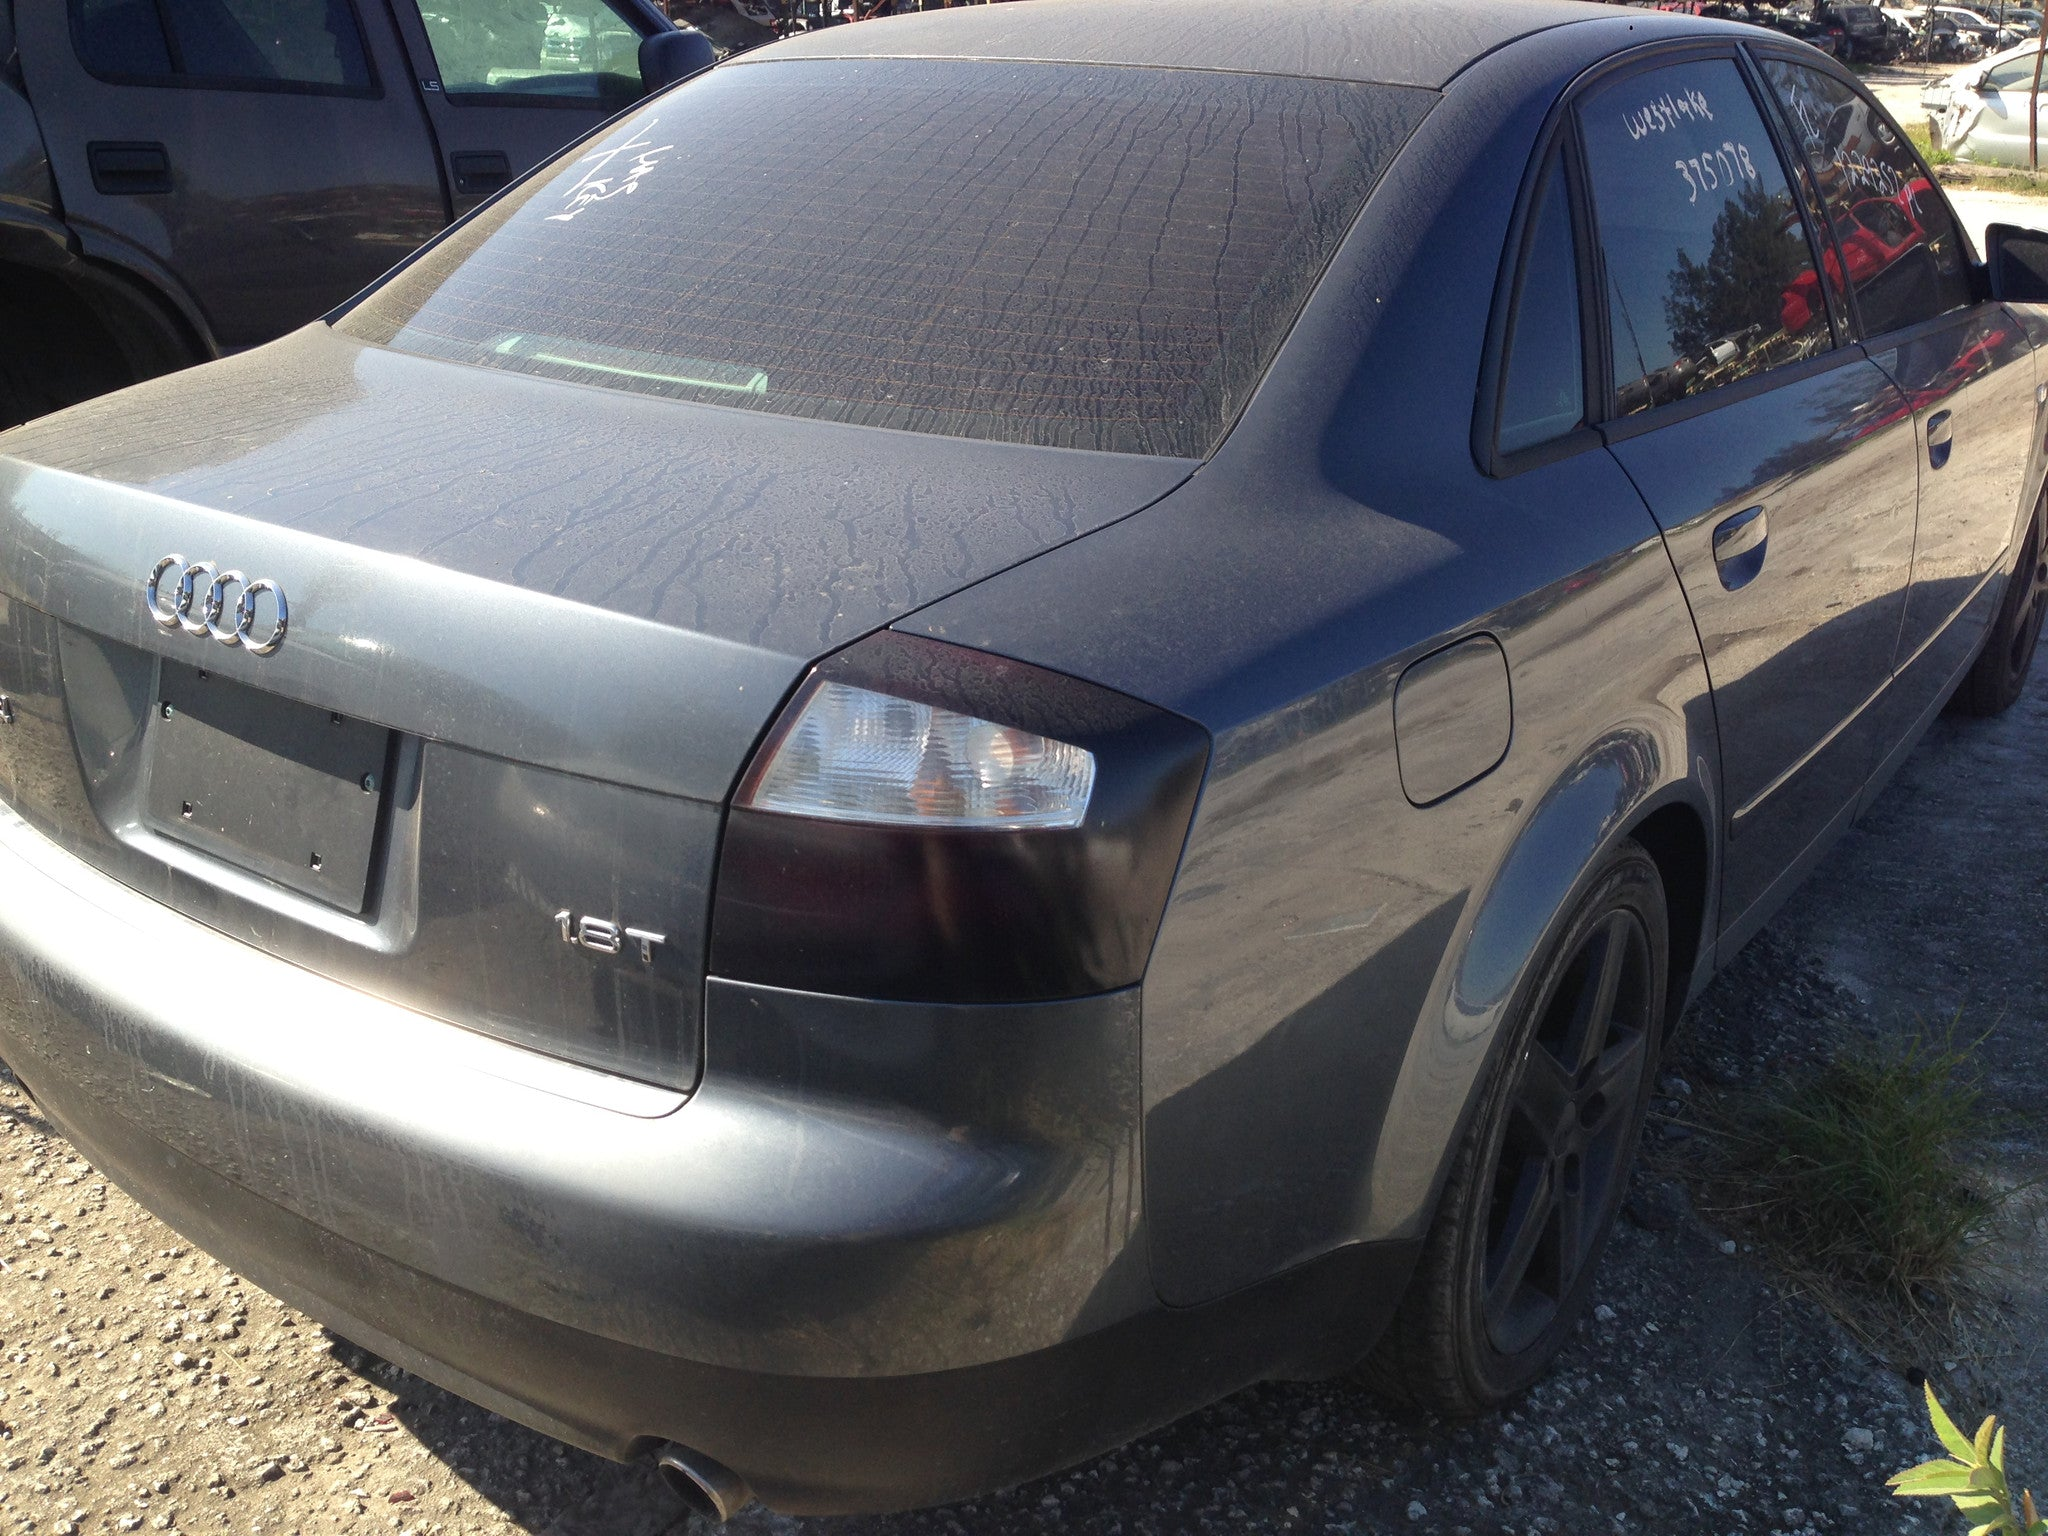 Audi A4 2003 For Parts Used Auto Parts Miami Salvage Yard